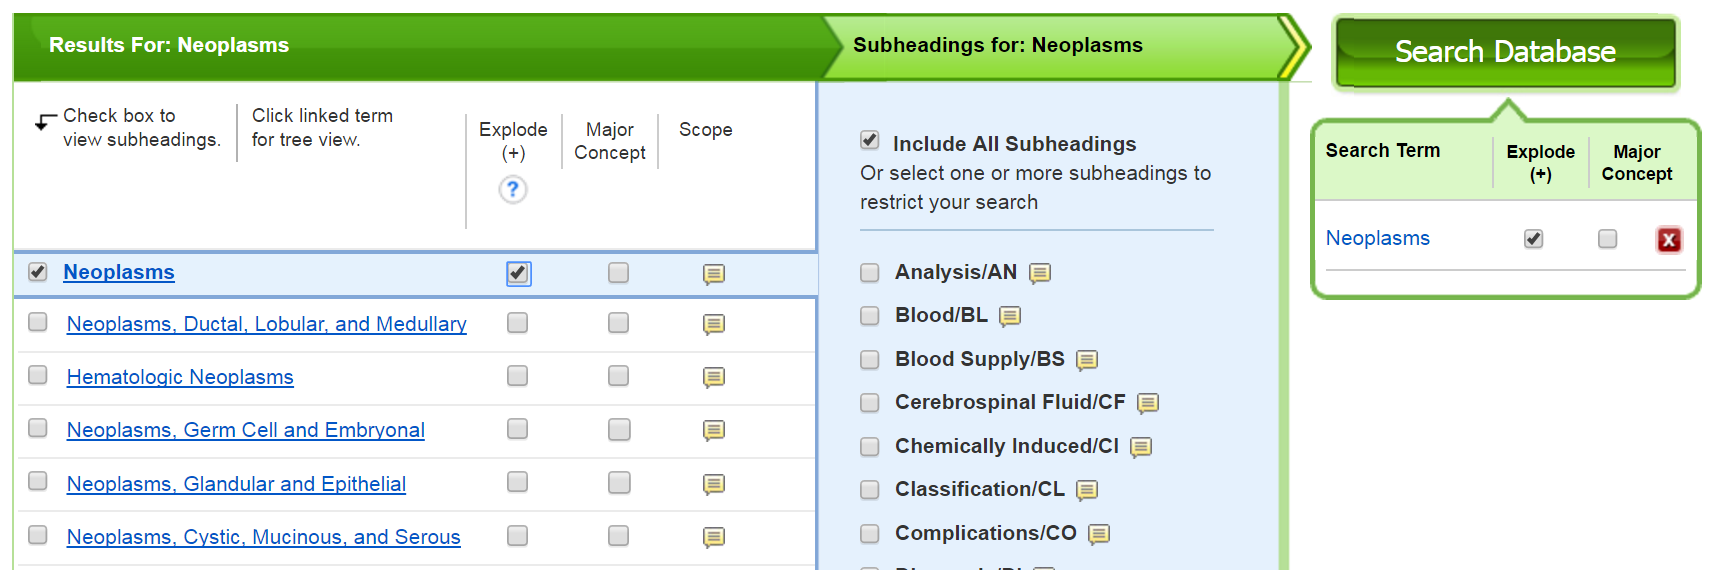 CINAHL Headings with the search term Neoplasm. If you select the box that says Explode it will give you more options and allow you to search the database with those terms once you press search